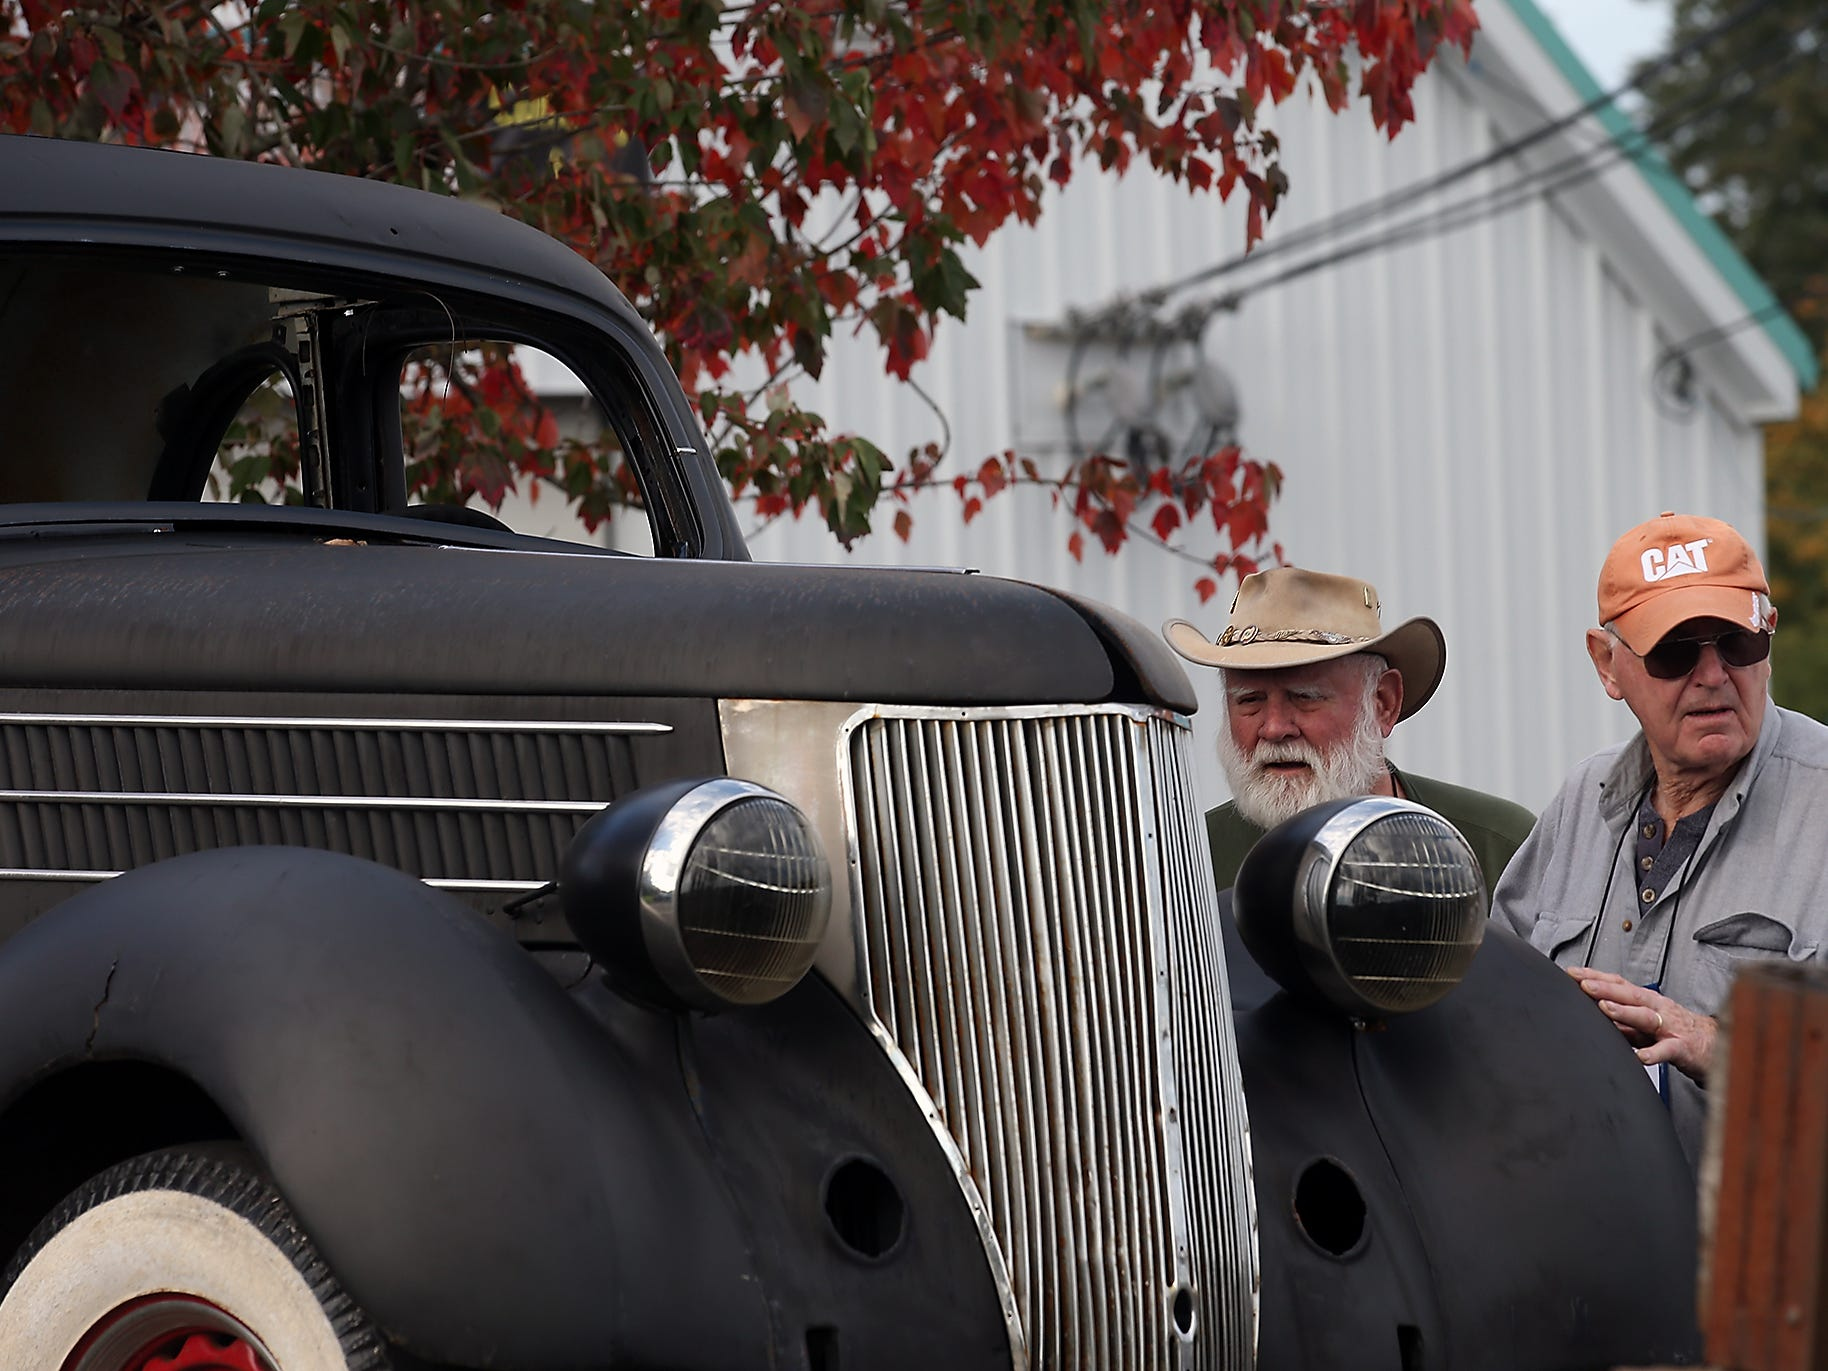 Ted Austin, of Poulsbo, (left) and Fred Sears, of Bremerton,  look over a 1939 Ford car body for sale as they help setup for the the annual Olympic Vintage Auto Club Swap Meet at the Kitsap County Fairgrounds on Friday, November 2, 2018.